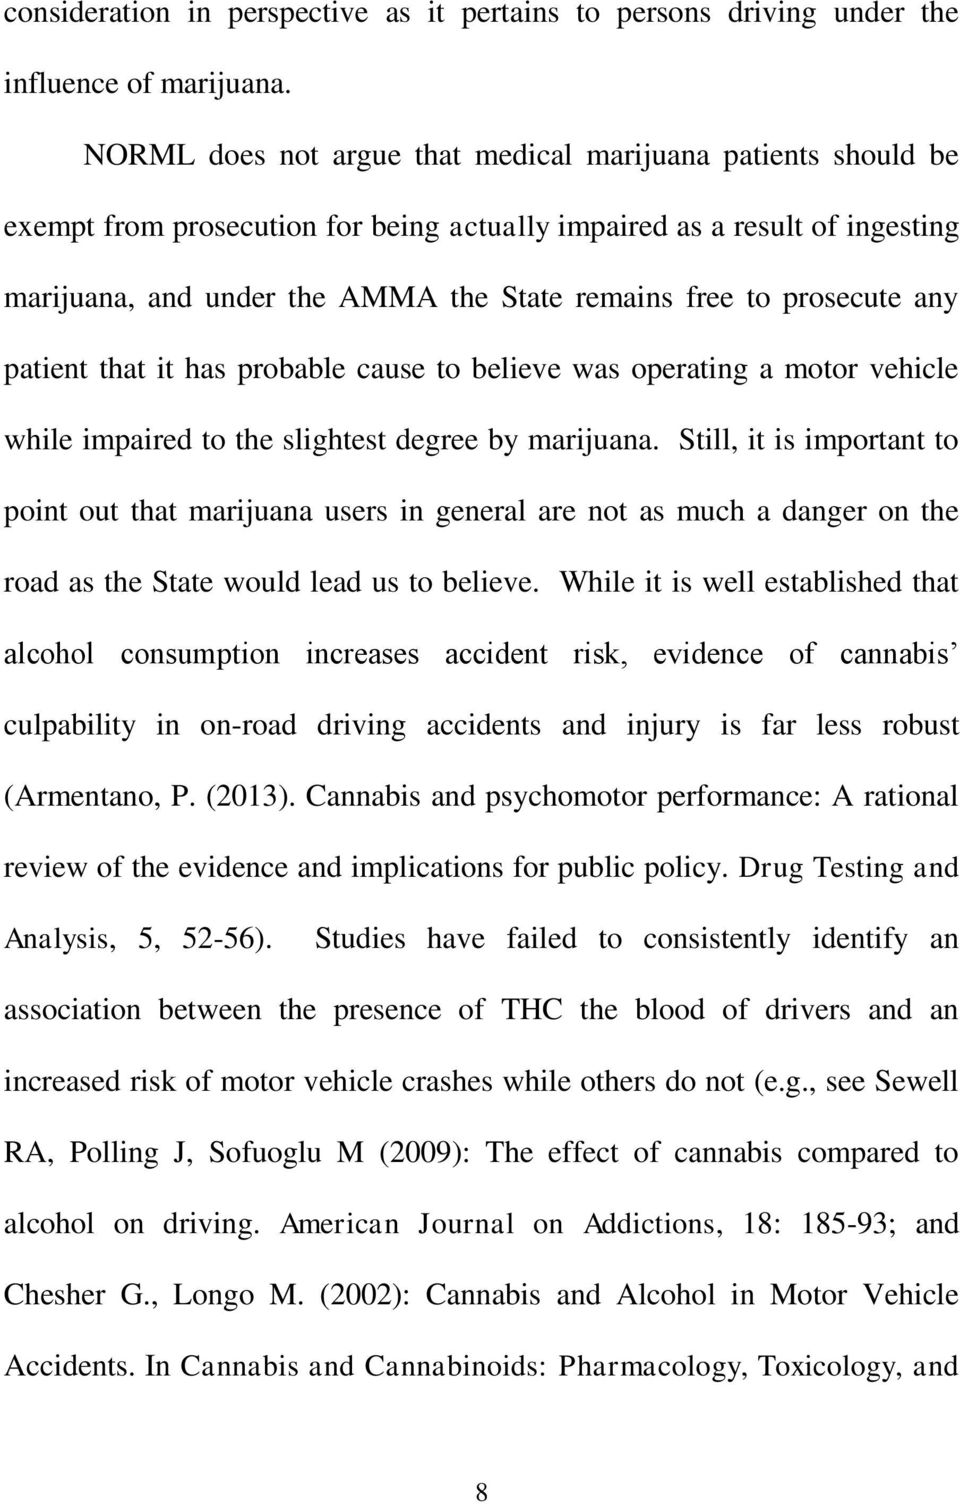 prosecute any patient that it has probable cause to believe was operating a motor vehicle while impaired to the slightest degree by marijuana.